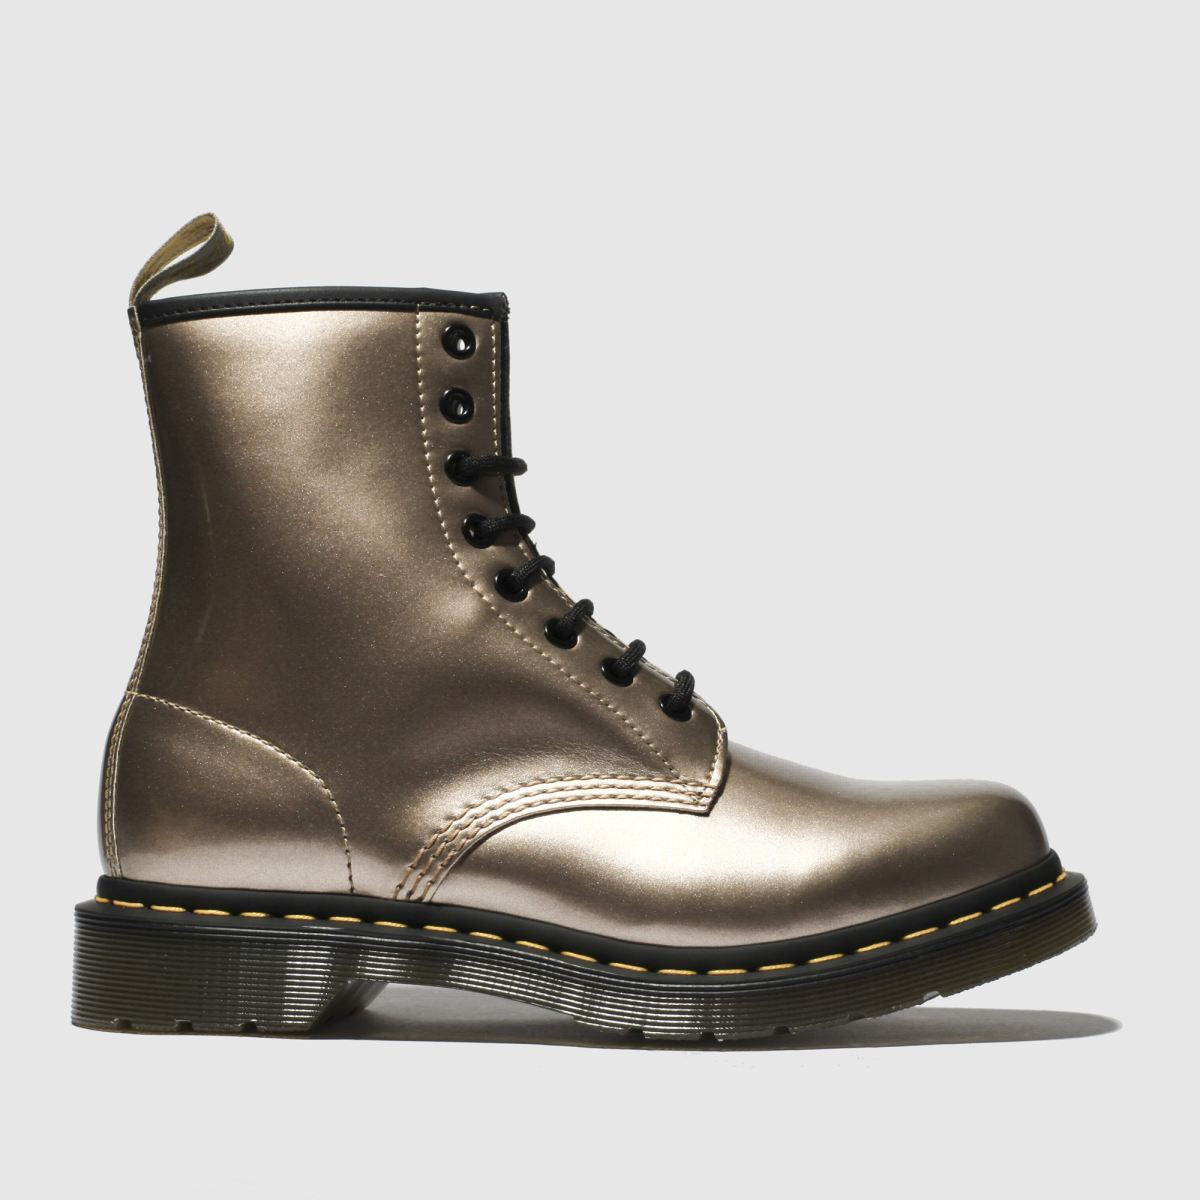 Dr Martens Gold 1460 Vegan Chrome 8 Eye Boots